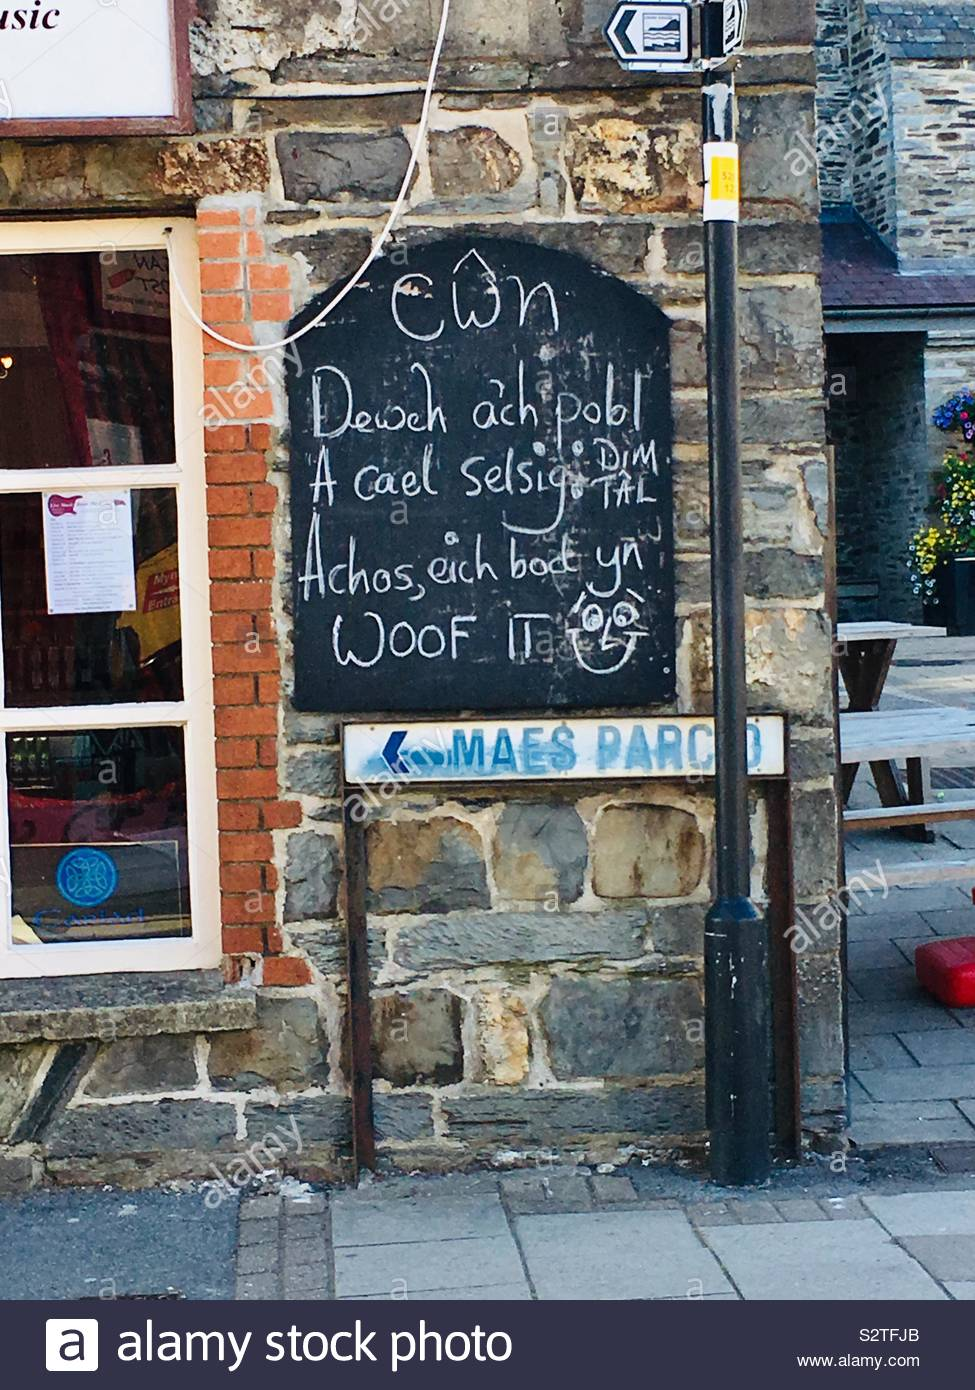 welsh language sign dogs bring your humans a free sausage because youre woof it on a cafe in cardigan wales S2TFJB